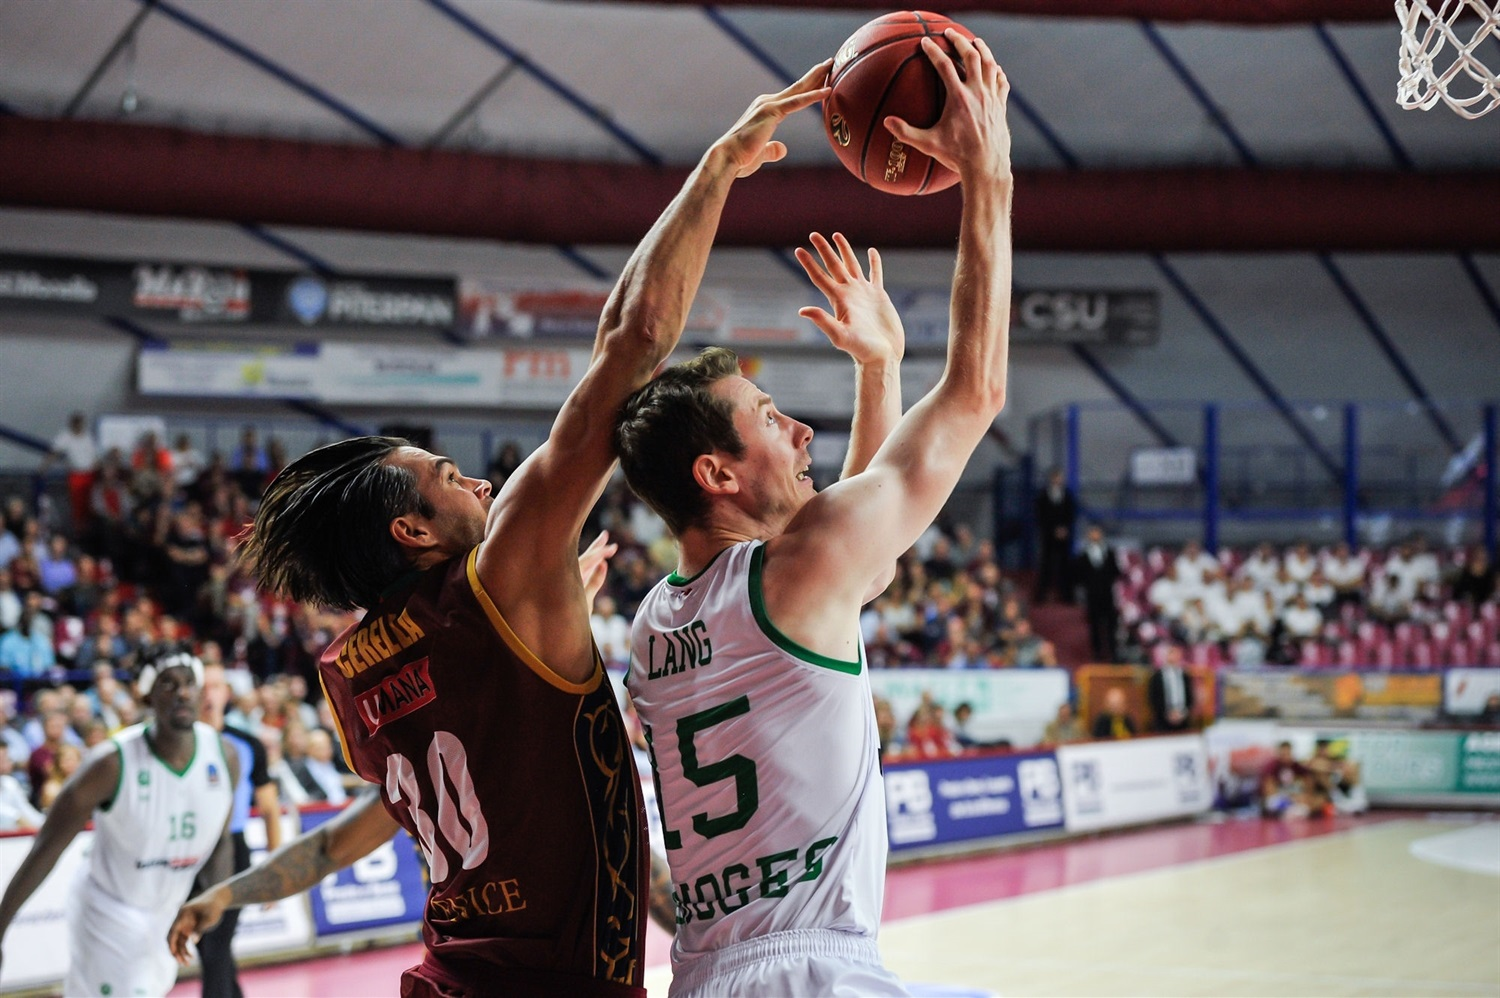 Bruno Cerella - Umana Reyer Venice (photo Reyer) - EC19